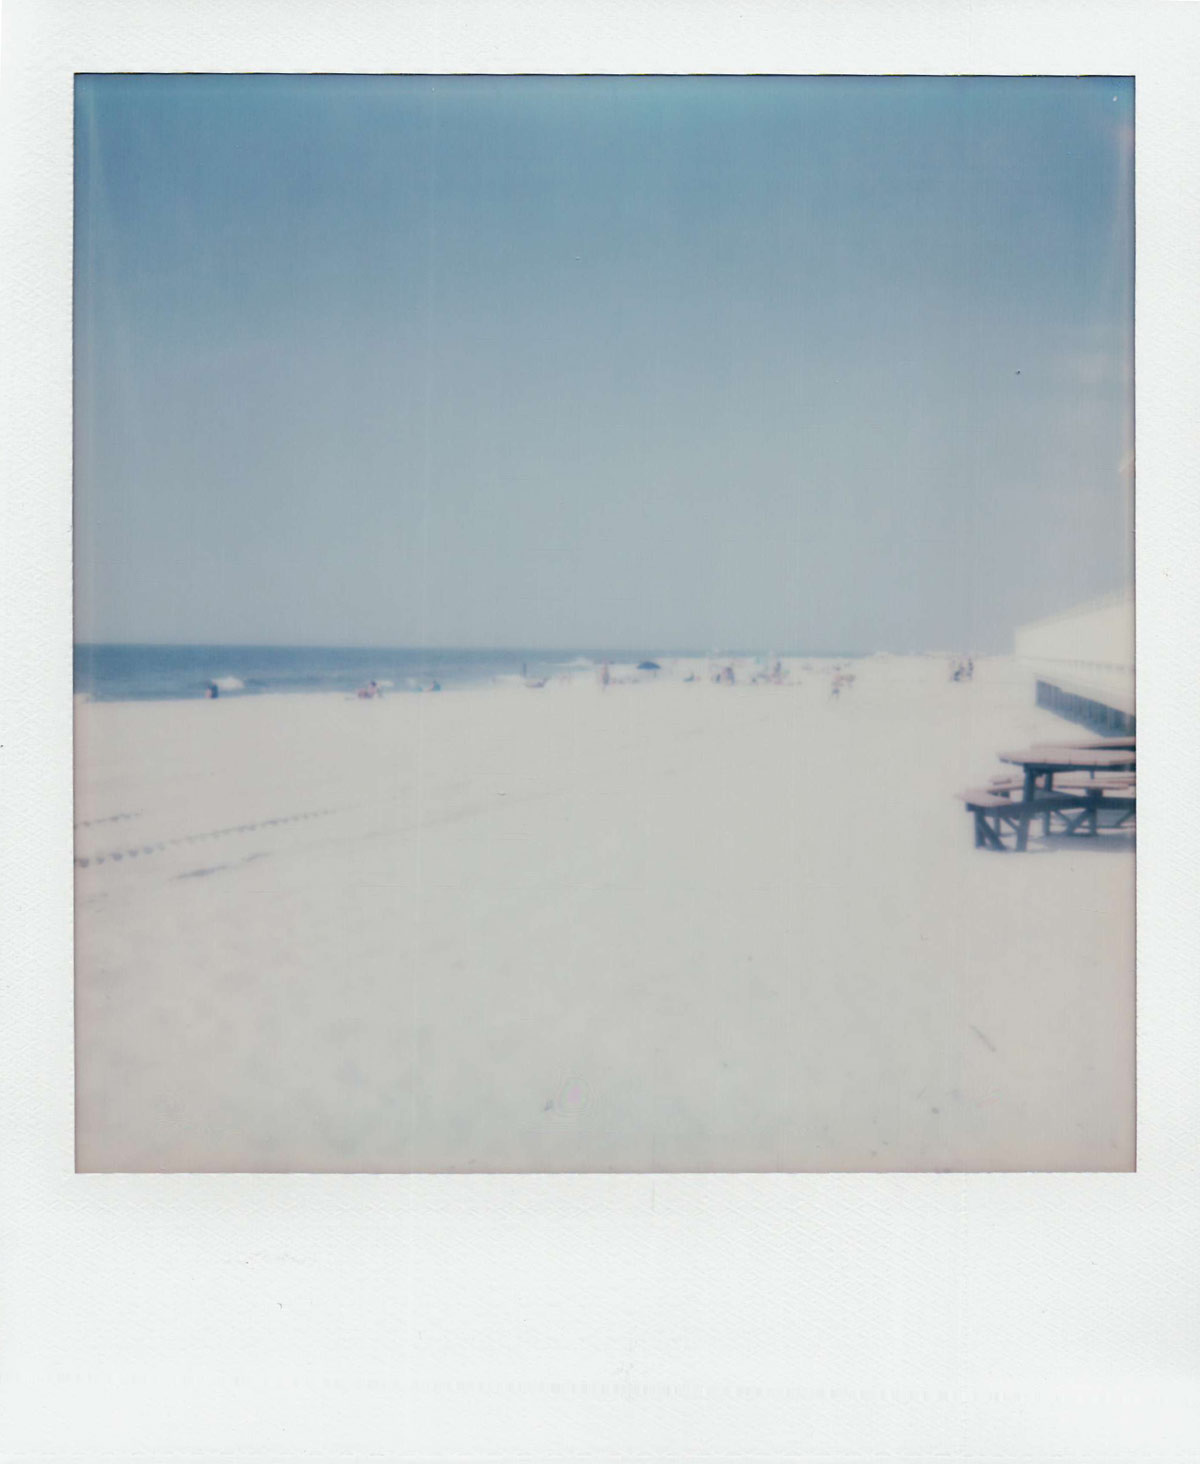 Beach, Cape May, New Jersey